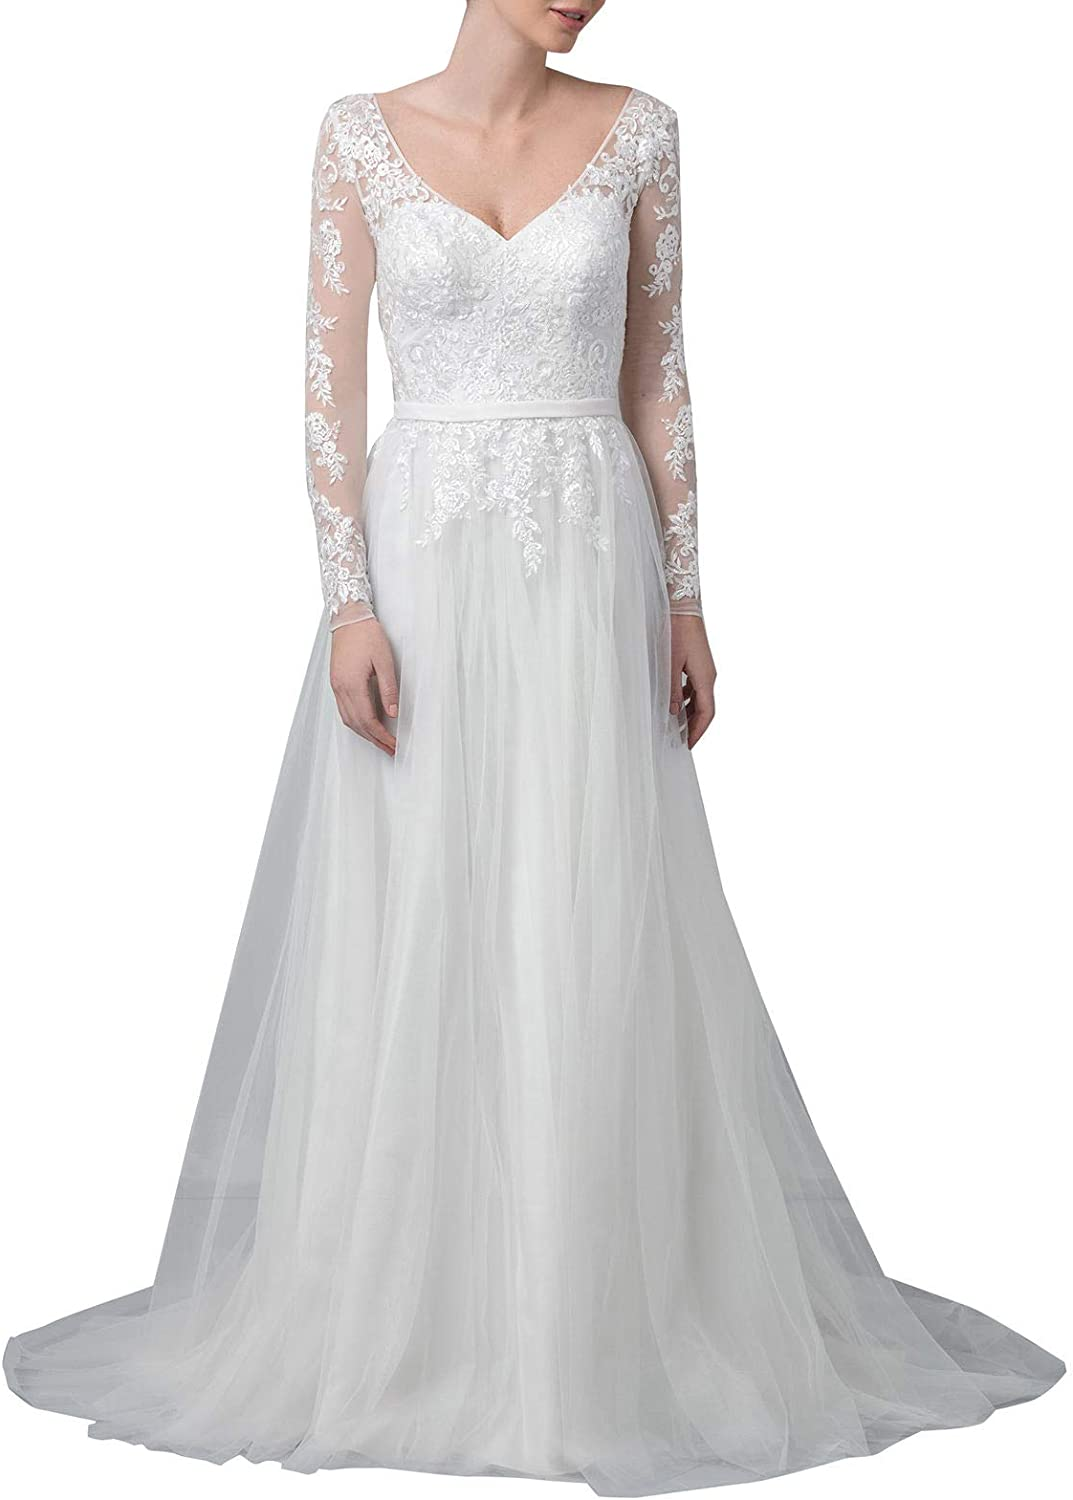 Aishanglina Women's Long Sleeves Lace Appliques Wedding Dresses Bridal Gowns with Low Back